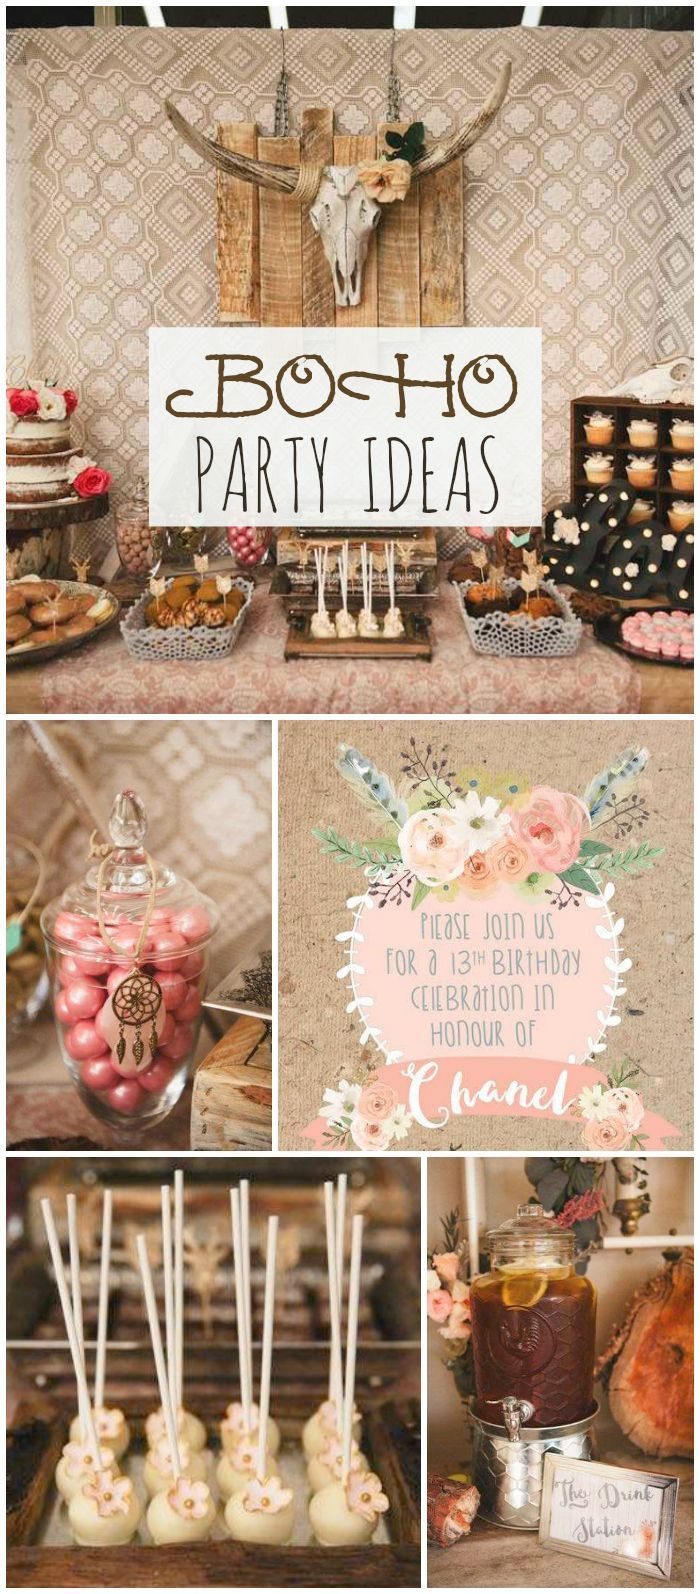 17 best ideas about bohemian party on pinterest festival decorations gypsy wedding and. Black Bedroom Furniture Sets. Home Design Ideas